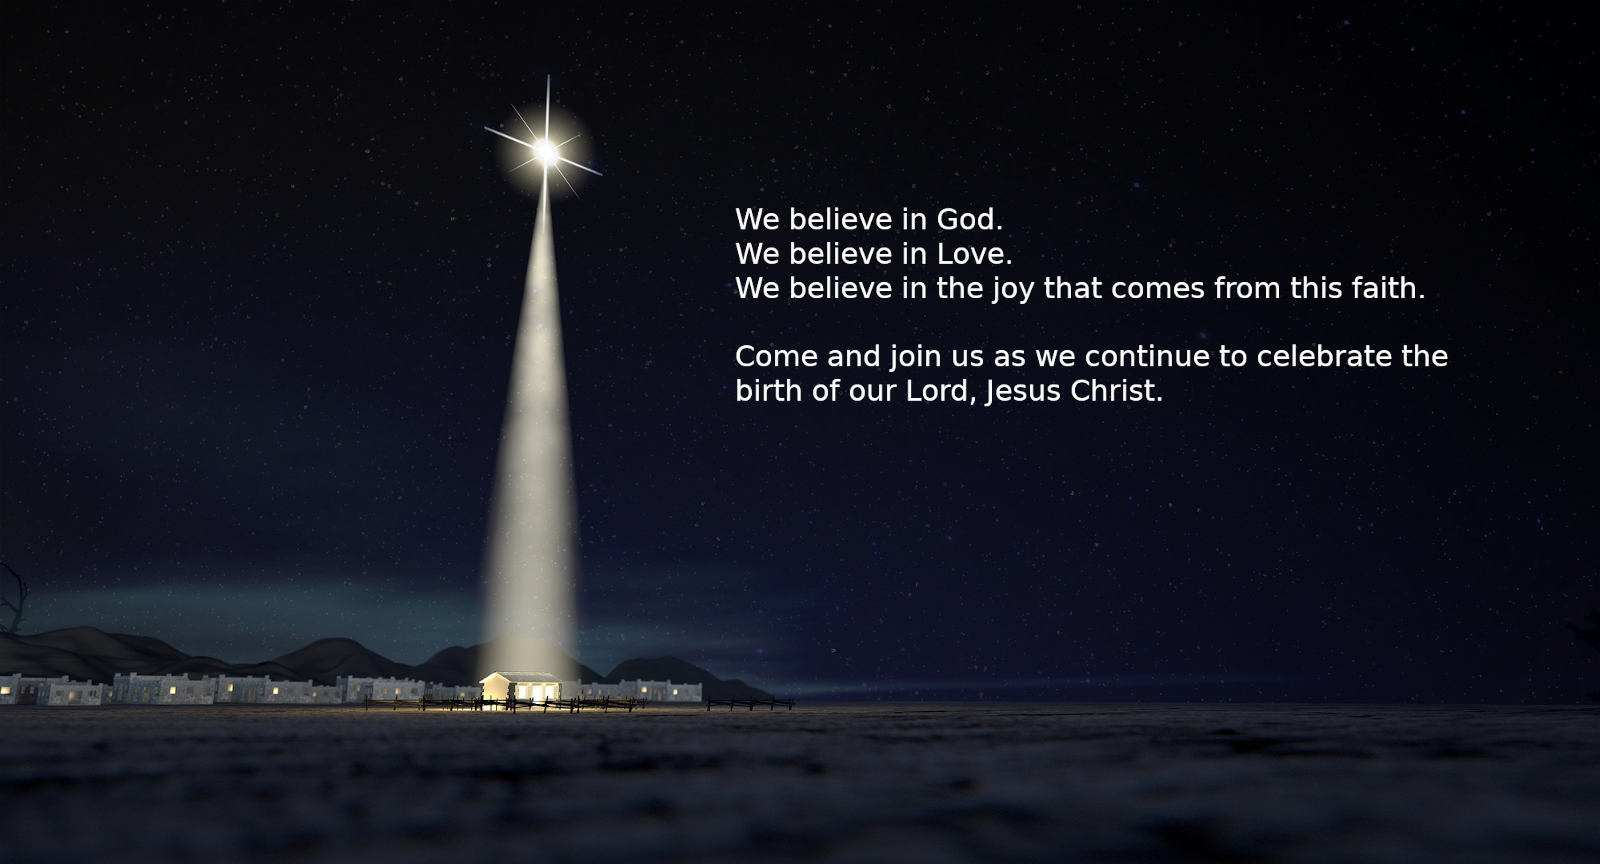 Picture of the Star of Bethlehem.